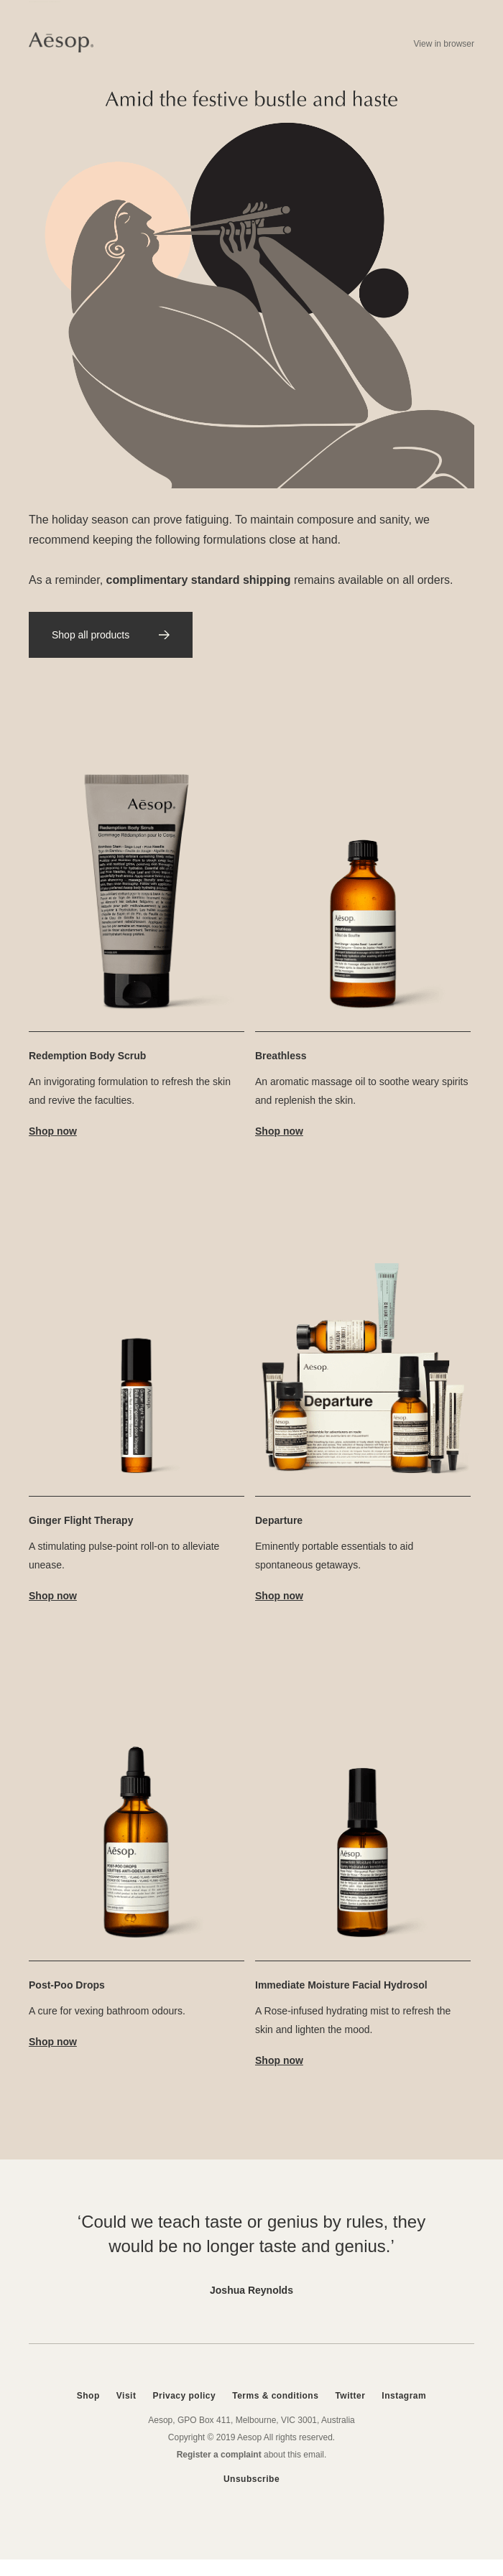 Black Friday email campaign by Aesop.